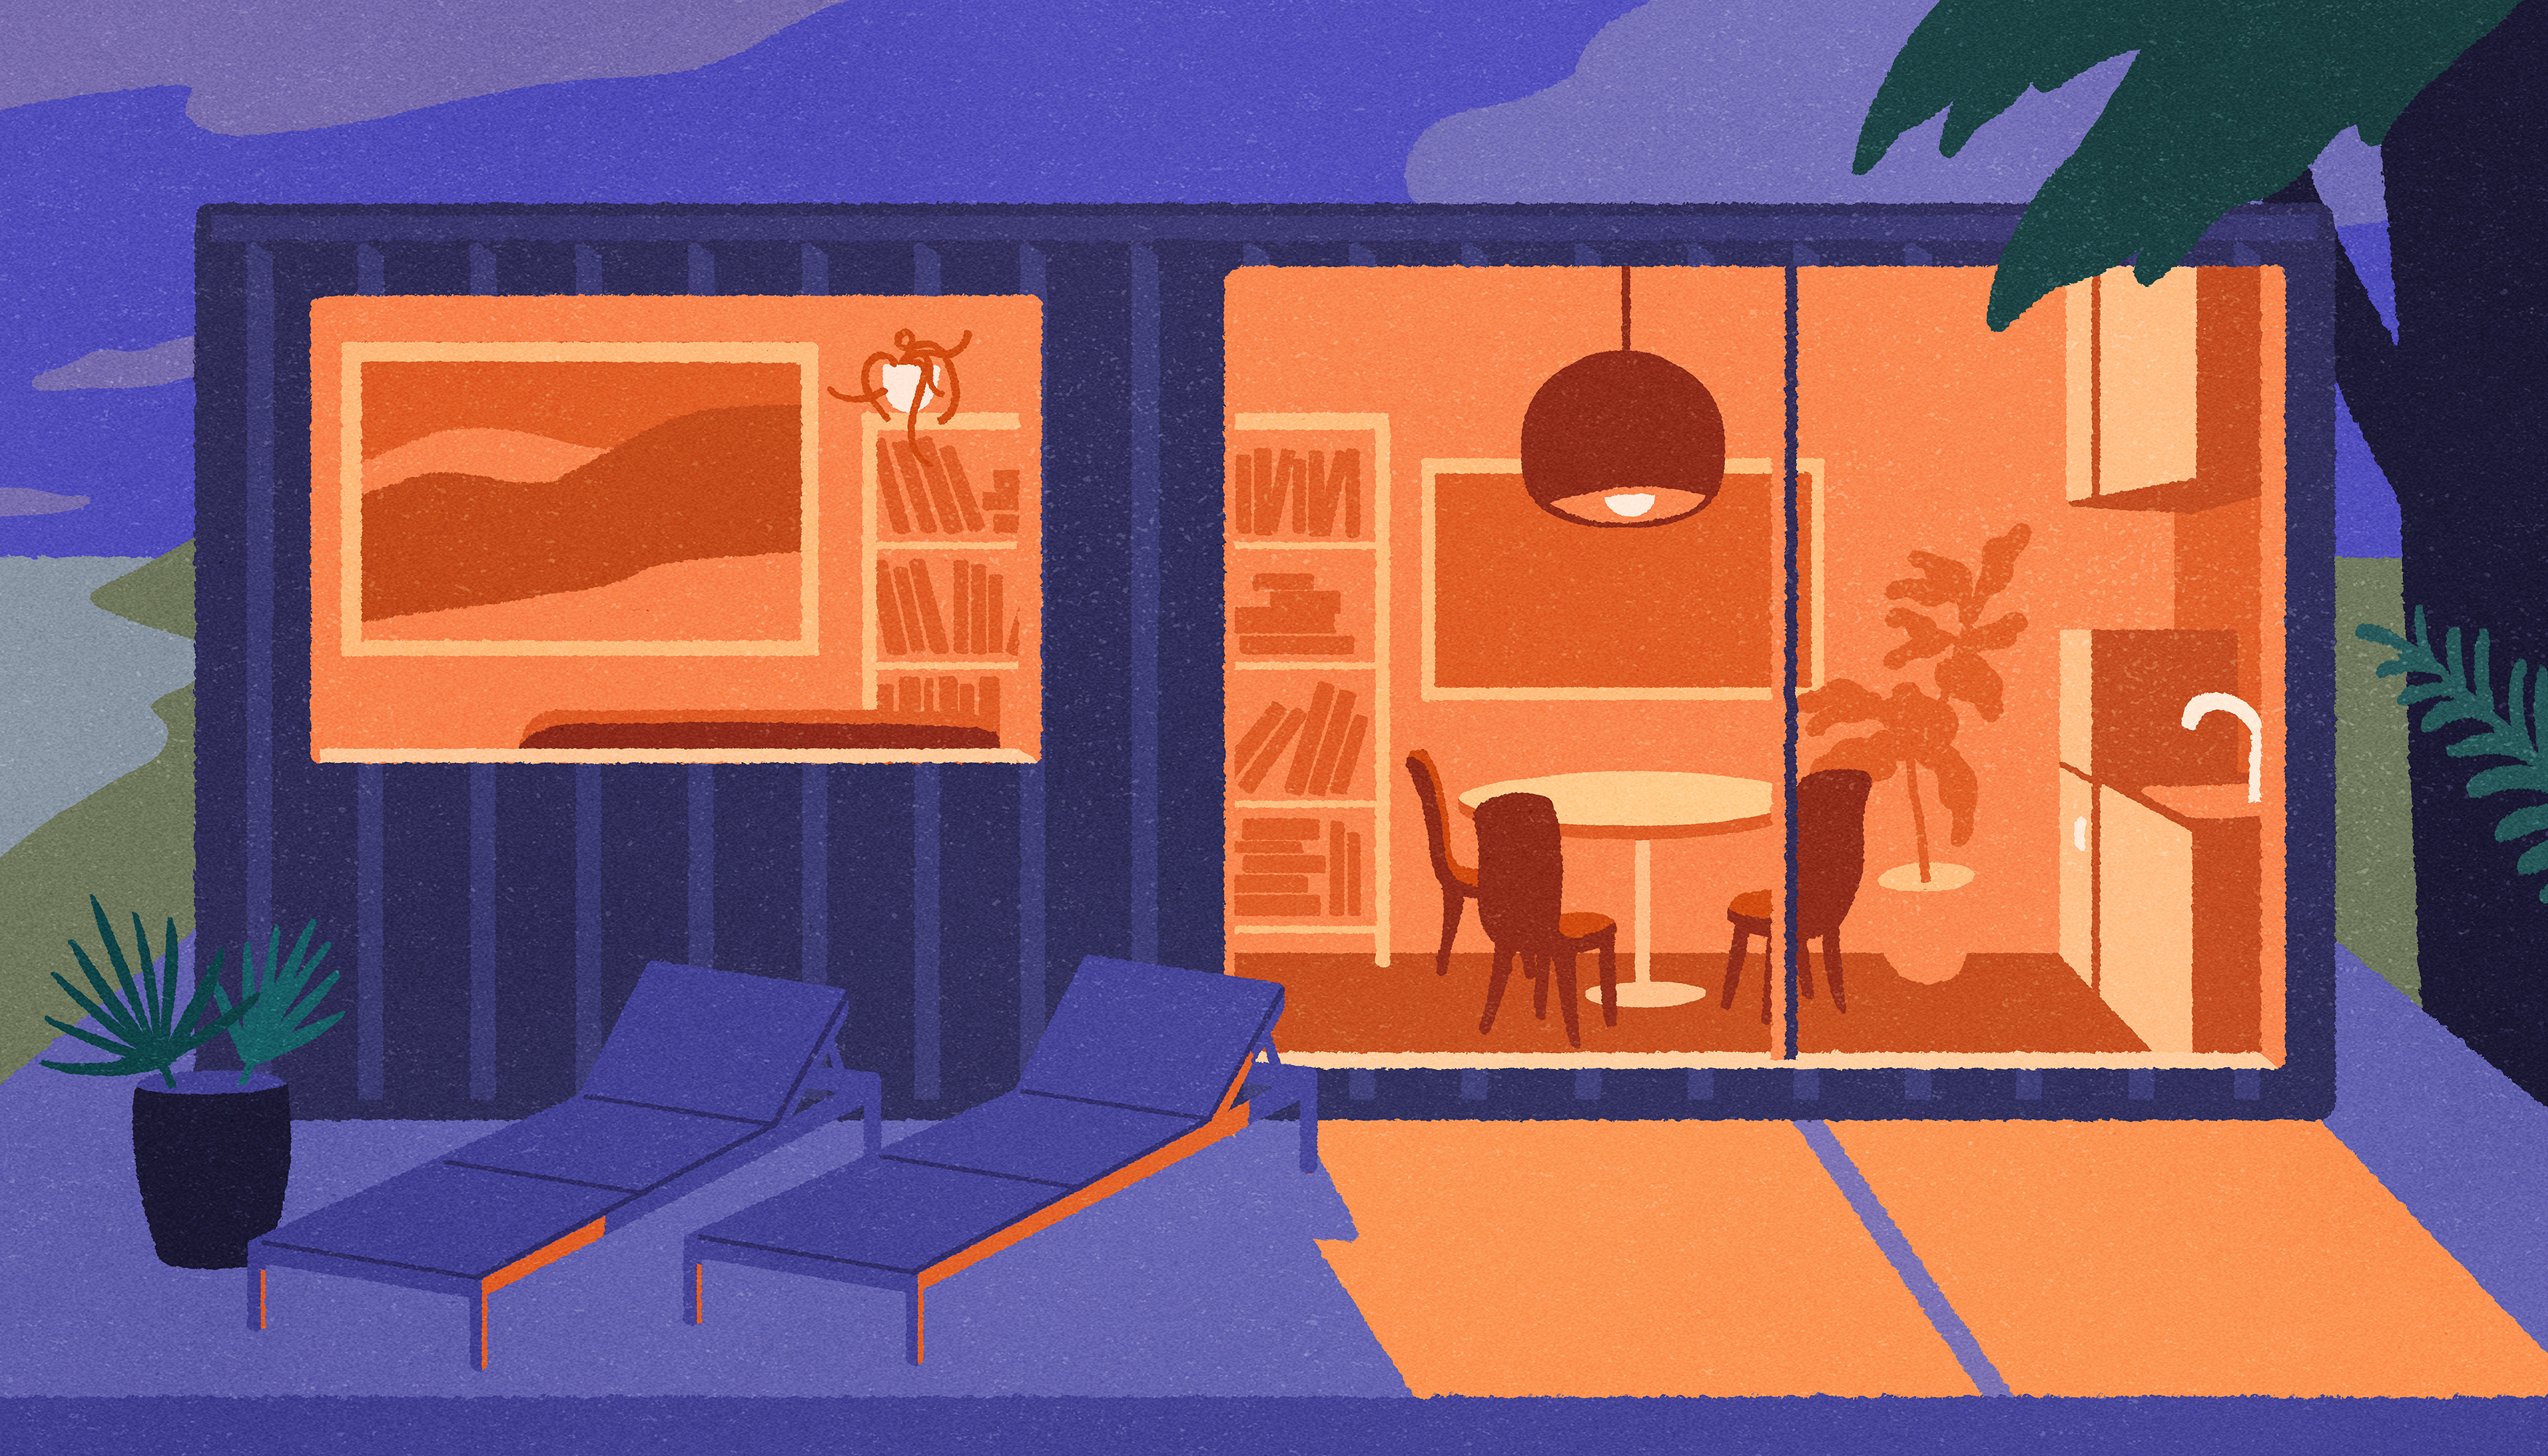 An illustration of a purple shipping container house with light streaming from the inside.